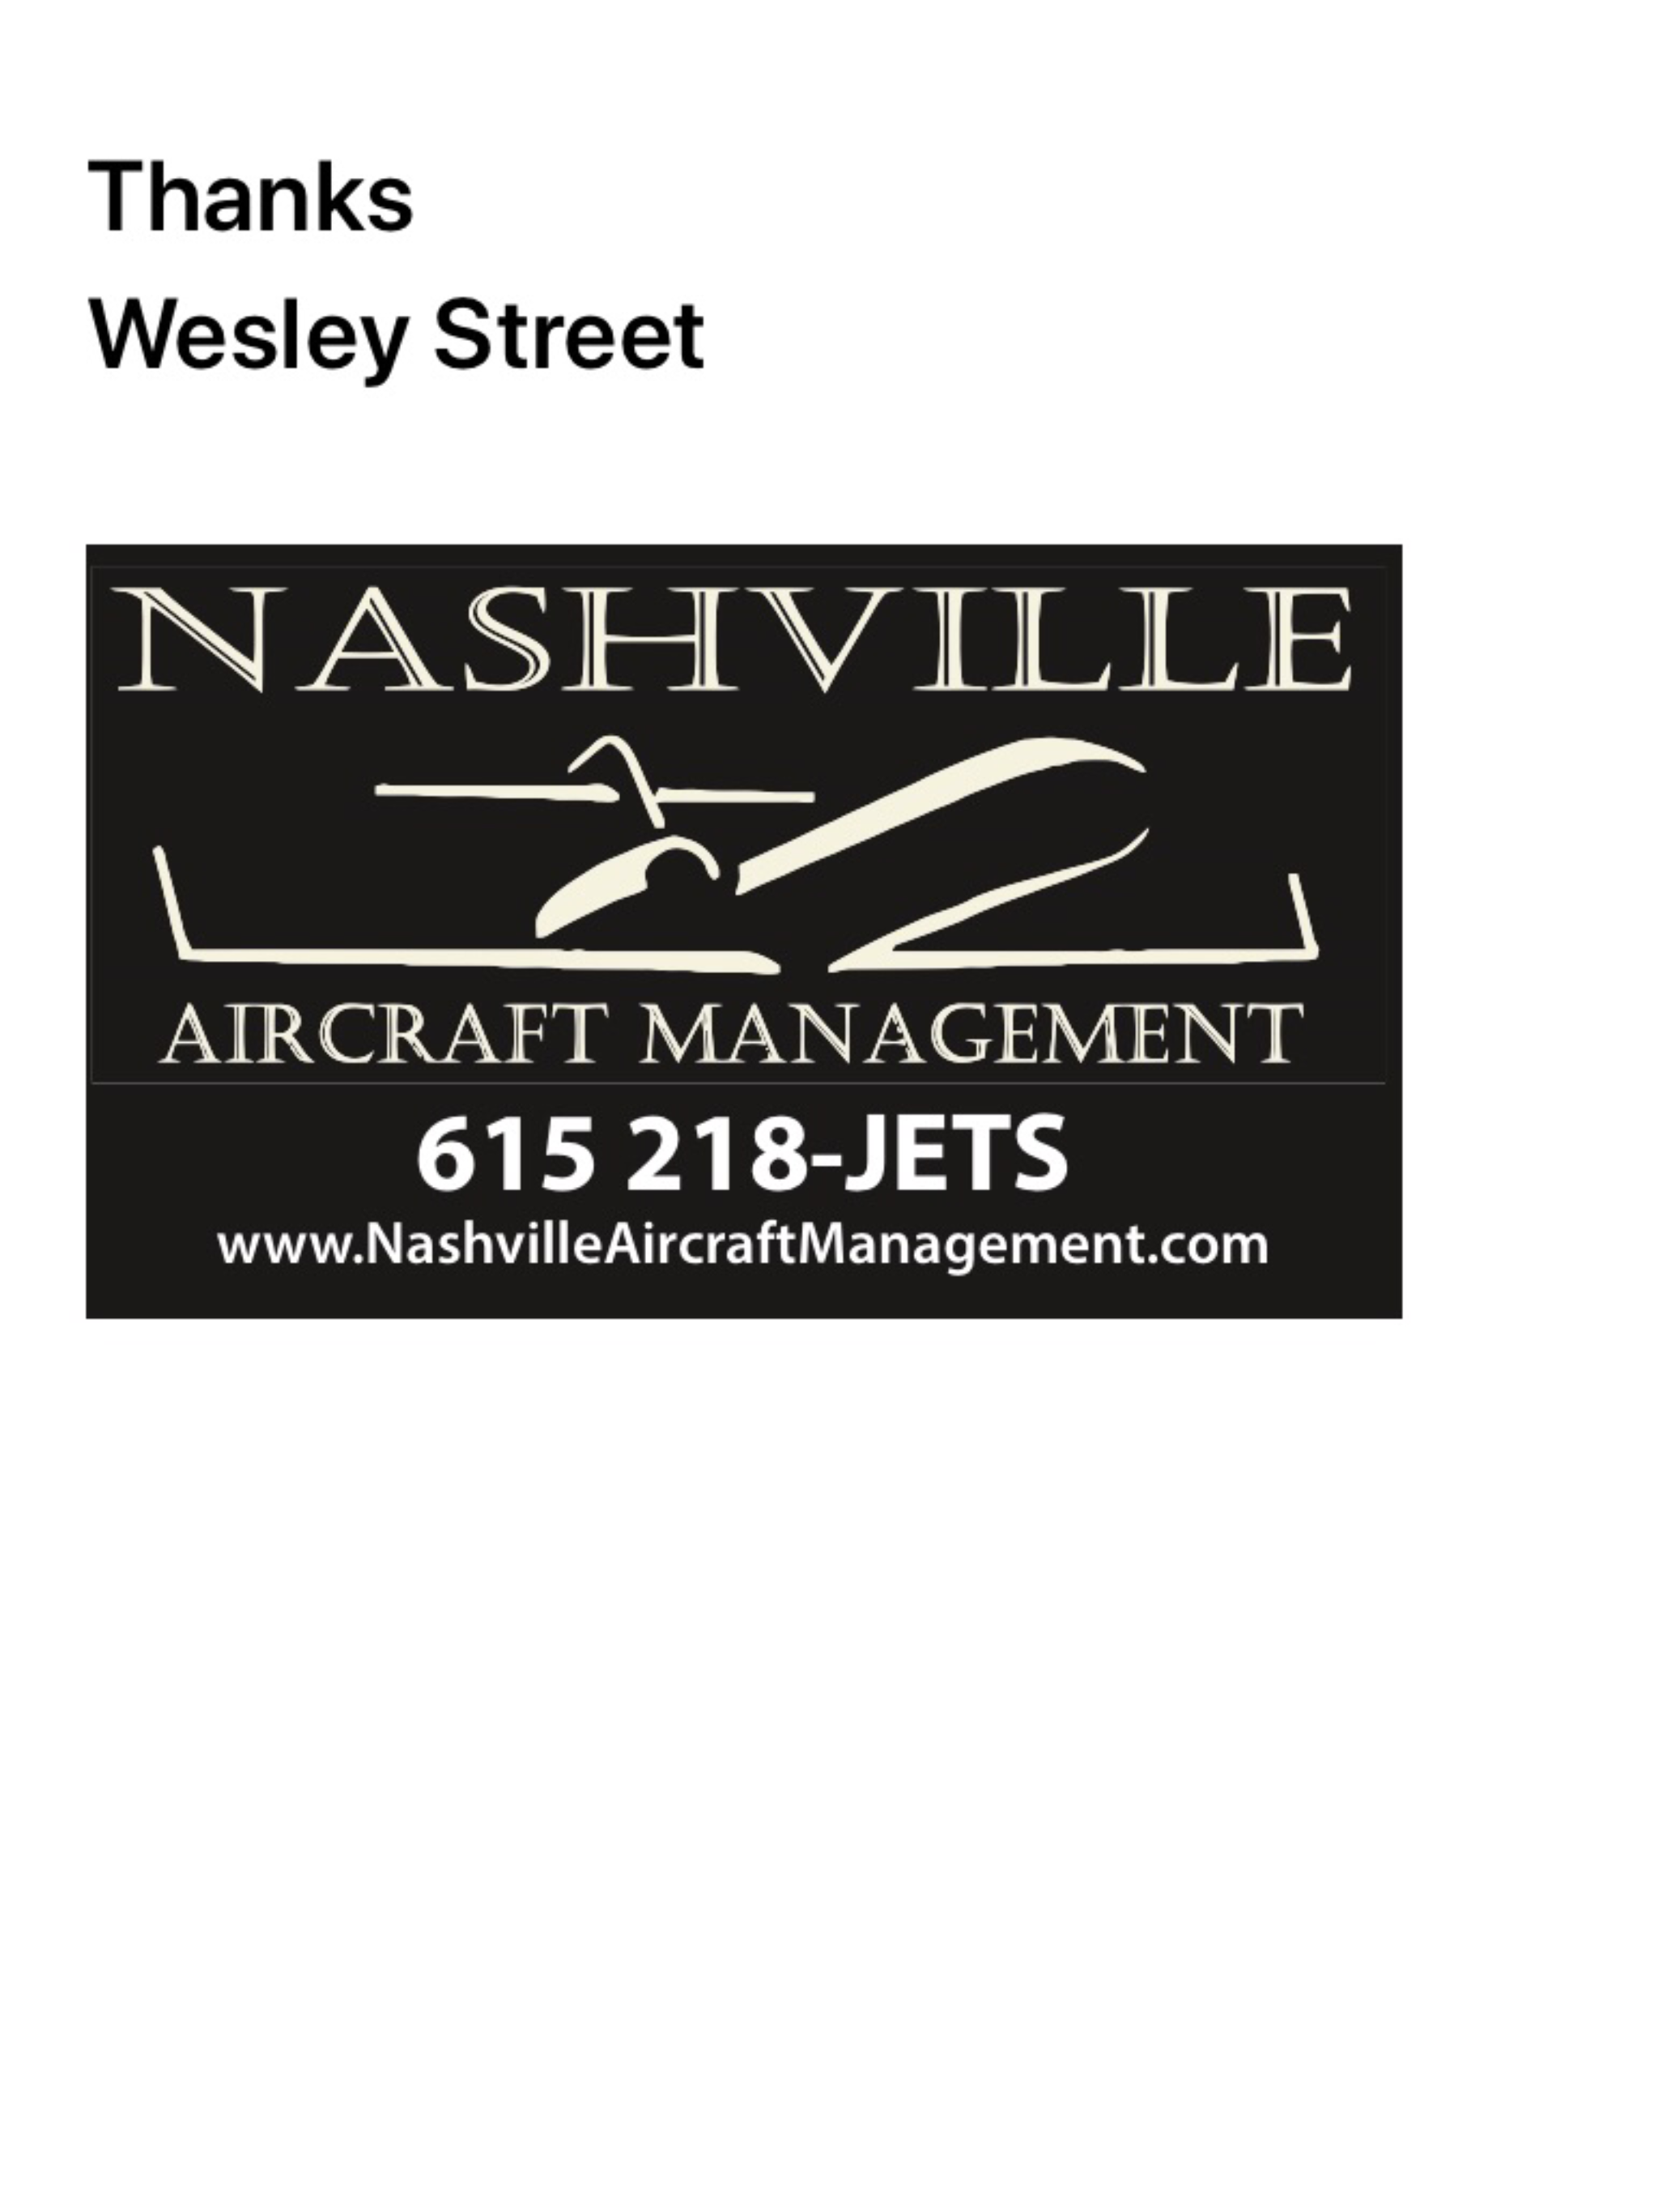 Nashville Aircraft Management LLC.